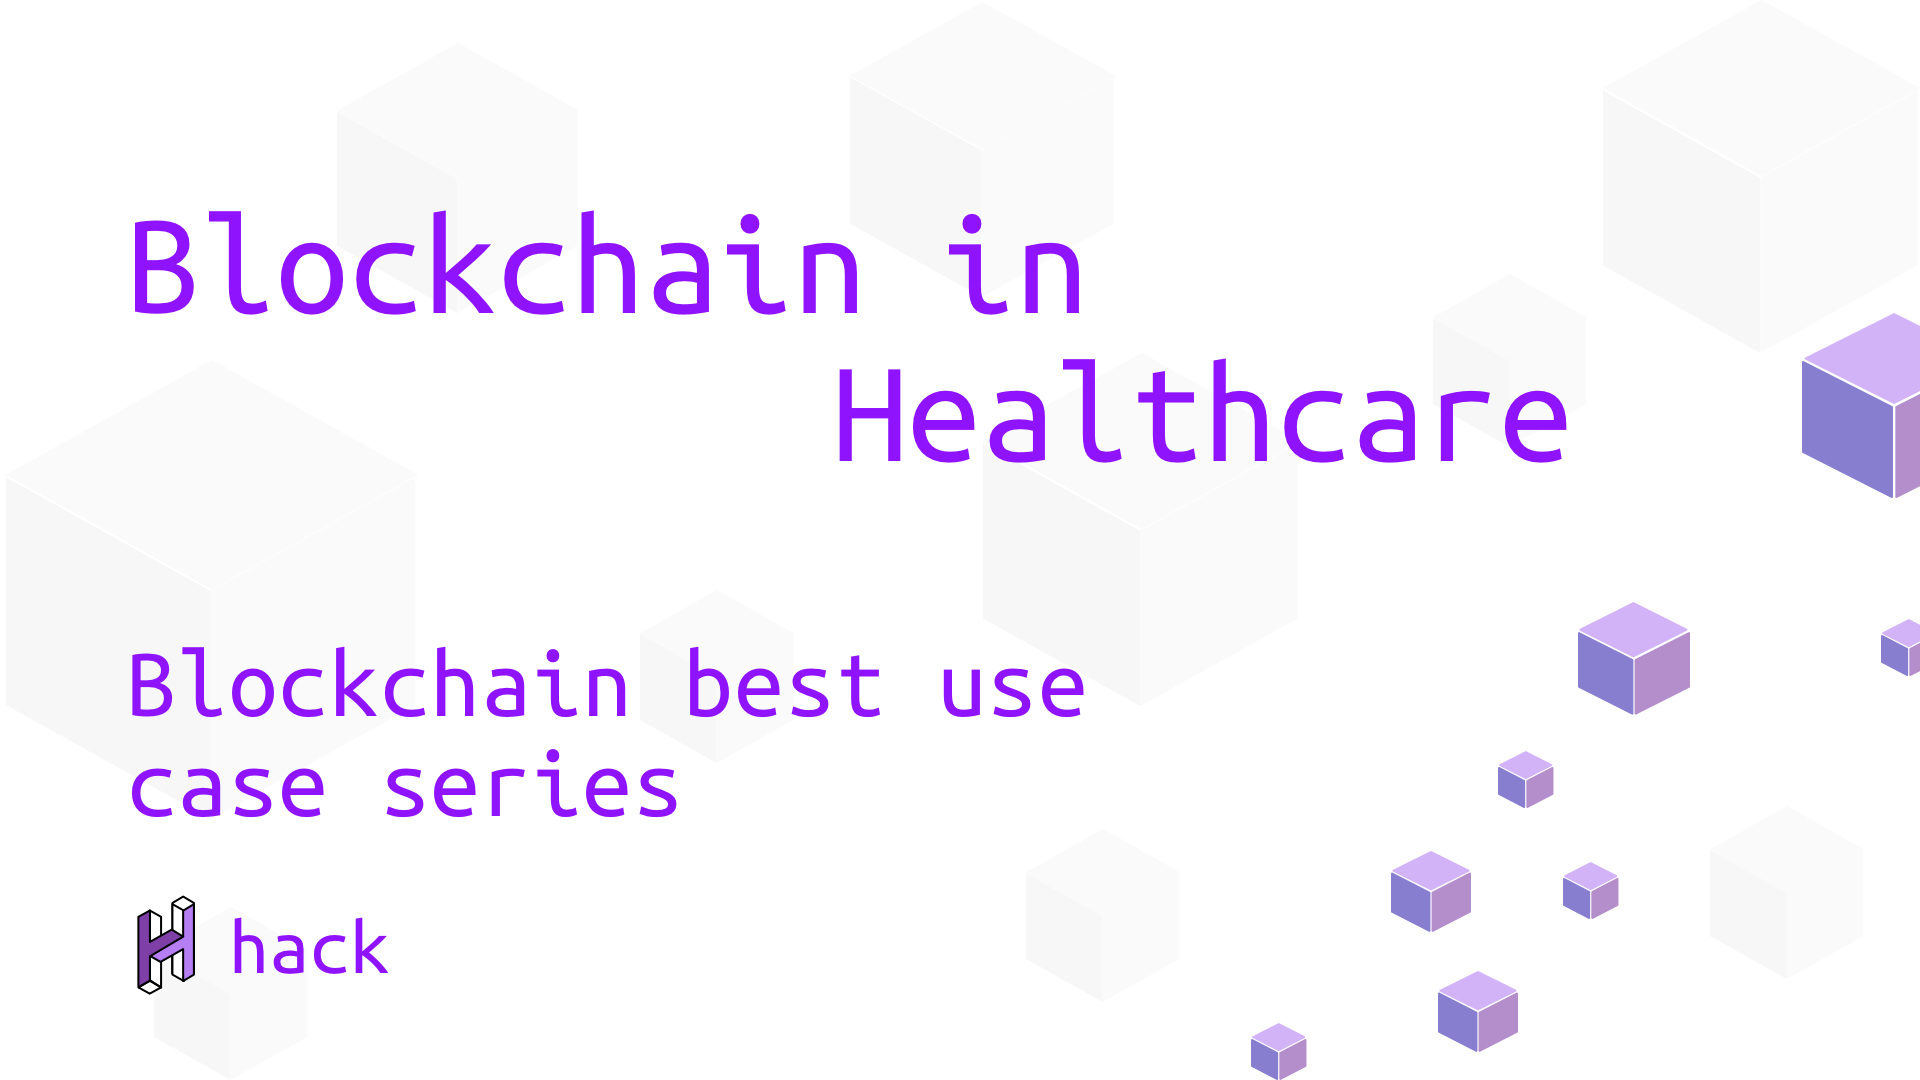 Disrupting industries with blockchain technology - best use cases - blockchain in healthcare